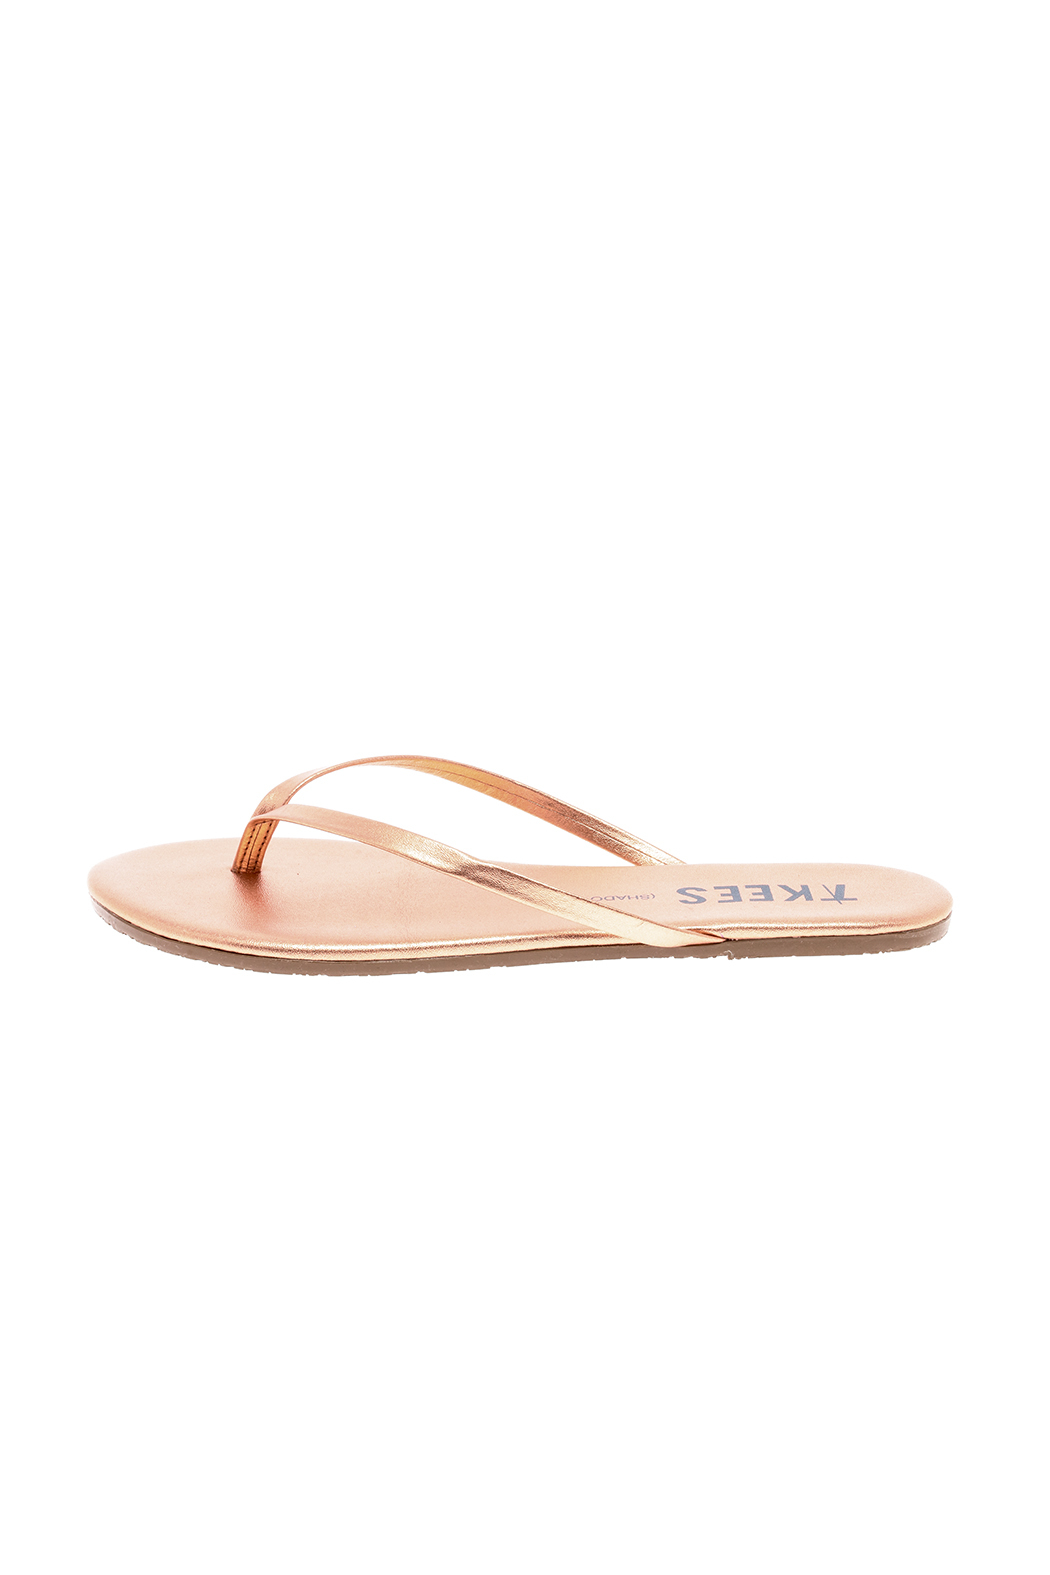 304967ea561b Tkees Rose Gold Flip Flop from Washington by LOLA Lifestyle Boutique ...